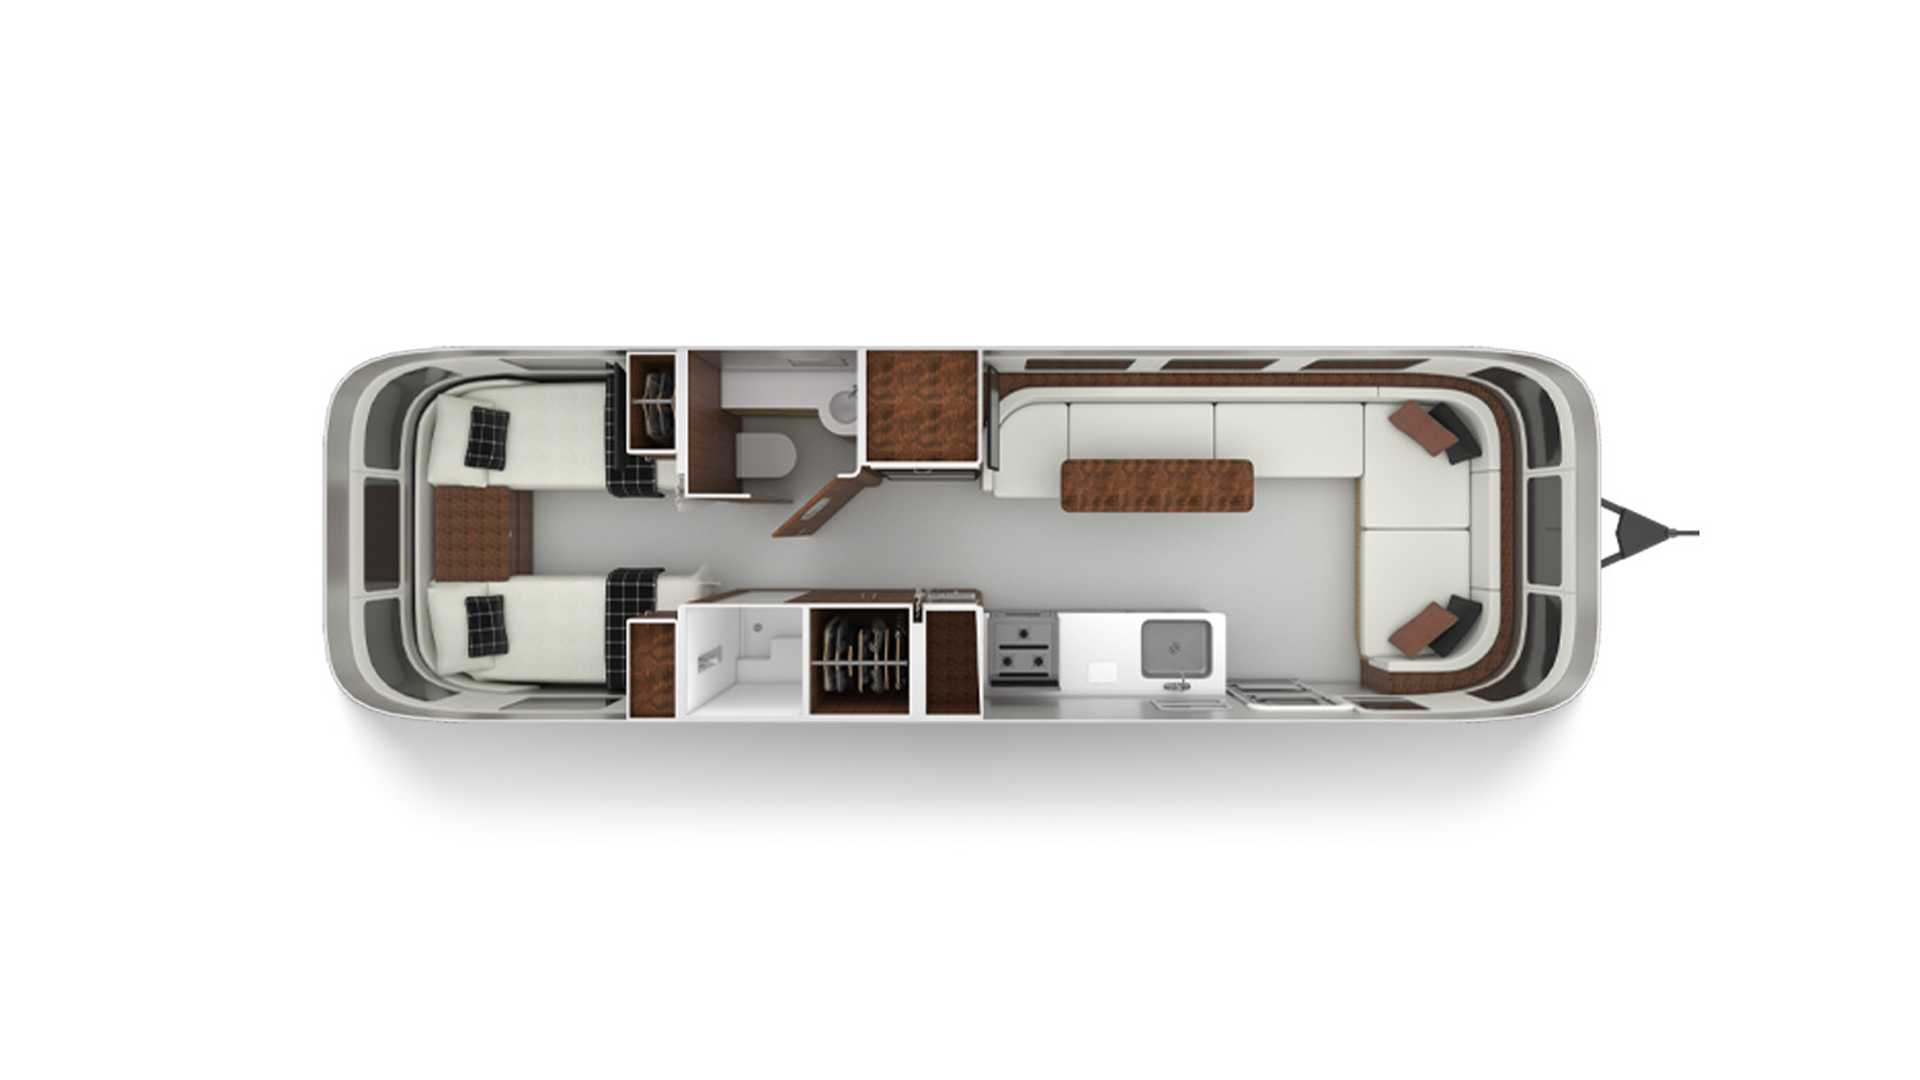 Airstream Globetrotter Gets Two New 30-Foot Floorplans